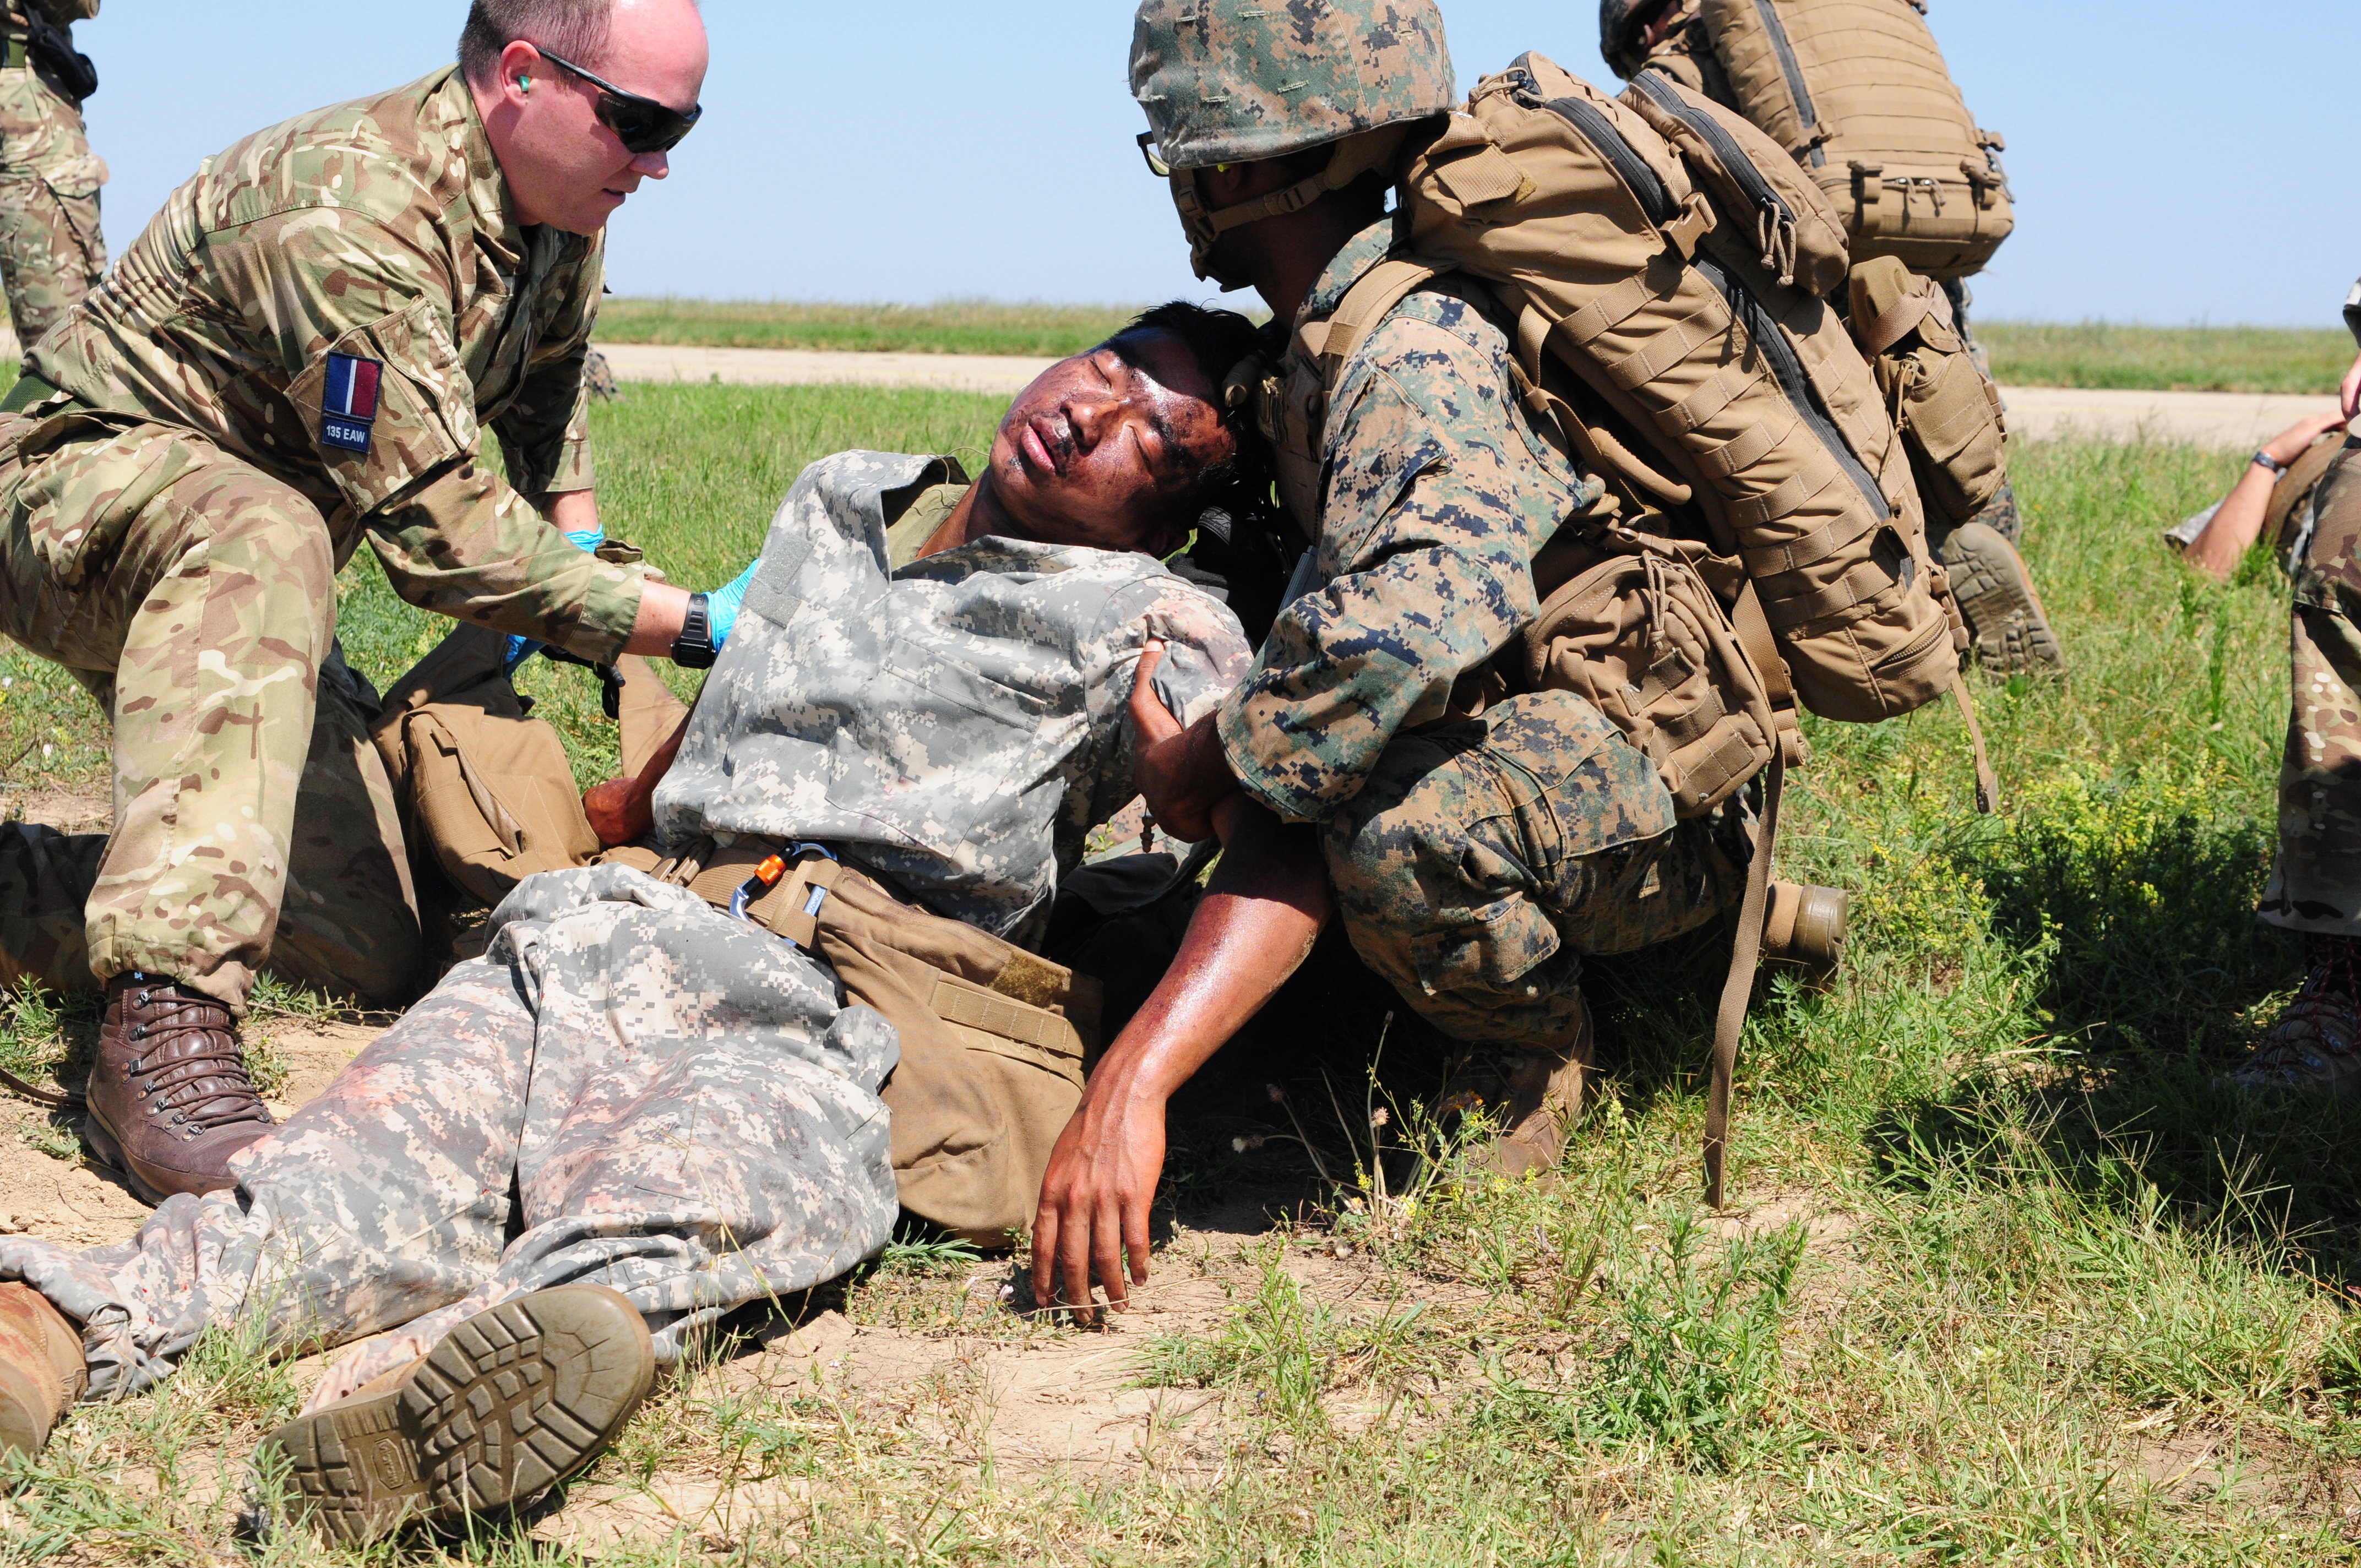 U.S. Marine and British medics quickly administer aid to simulated casualties and complete the nine-line medevac at Mihail Kogalniceanu Air Base in Romania, August 16, 2018. The U.S. Air Force, U.S. Marine Corps and British soldiers conducted Exercise Black Lion and Caduceus in support of Atlantic Resolve, an enduring training exercise between NATO and U.S. Forces.